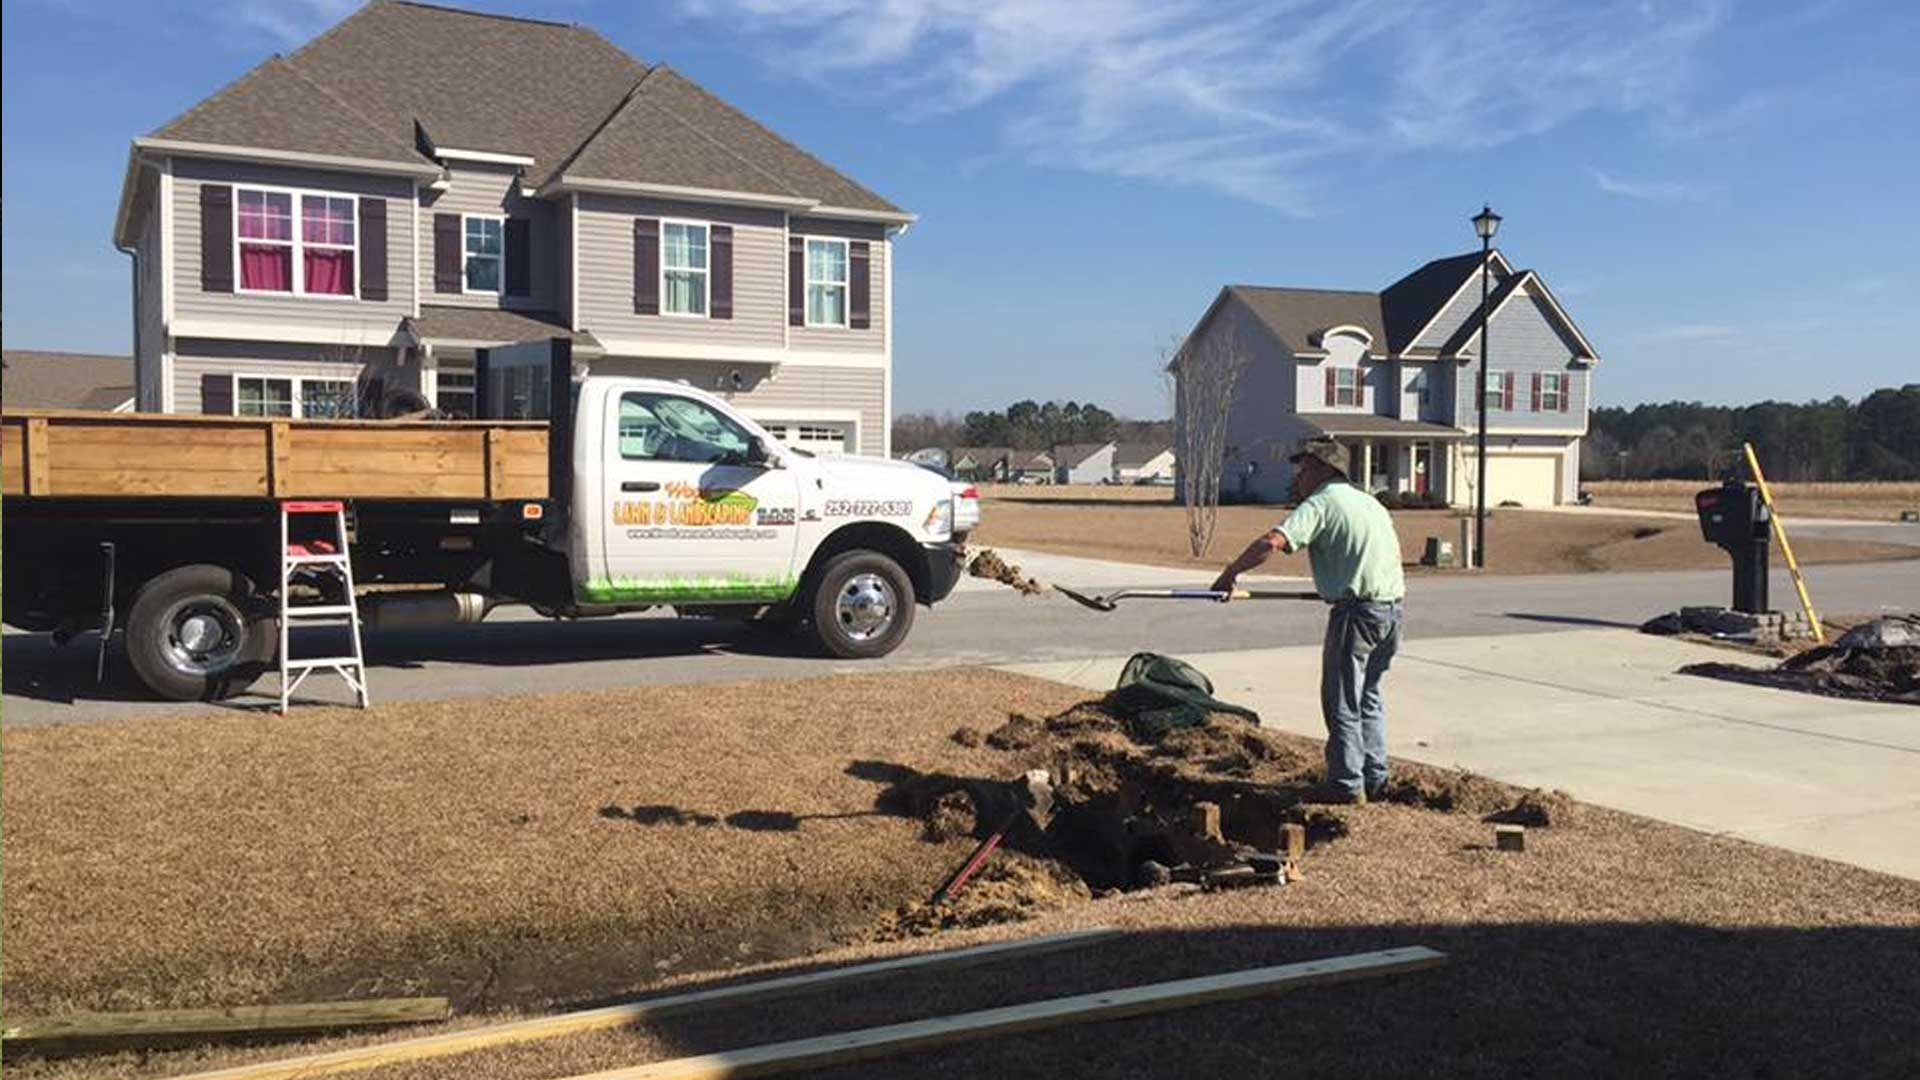 Our employee digging a hole for a new tree installation at a residential property located in Newport, NC.